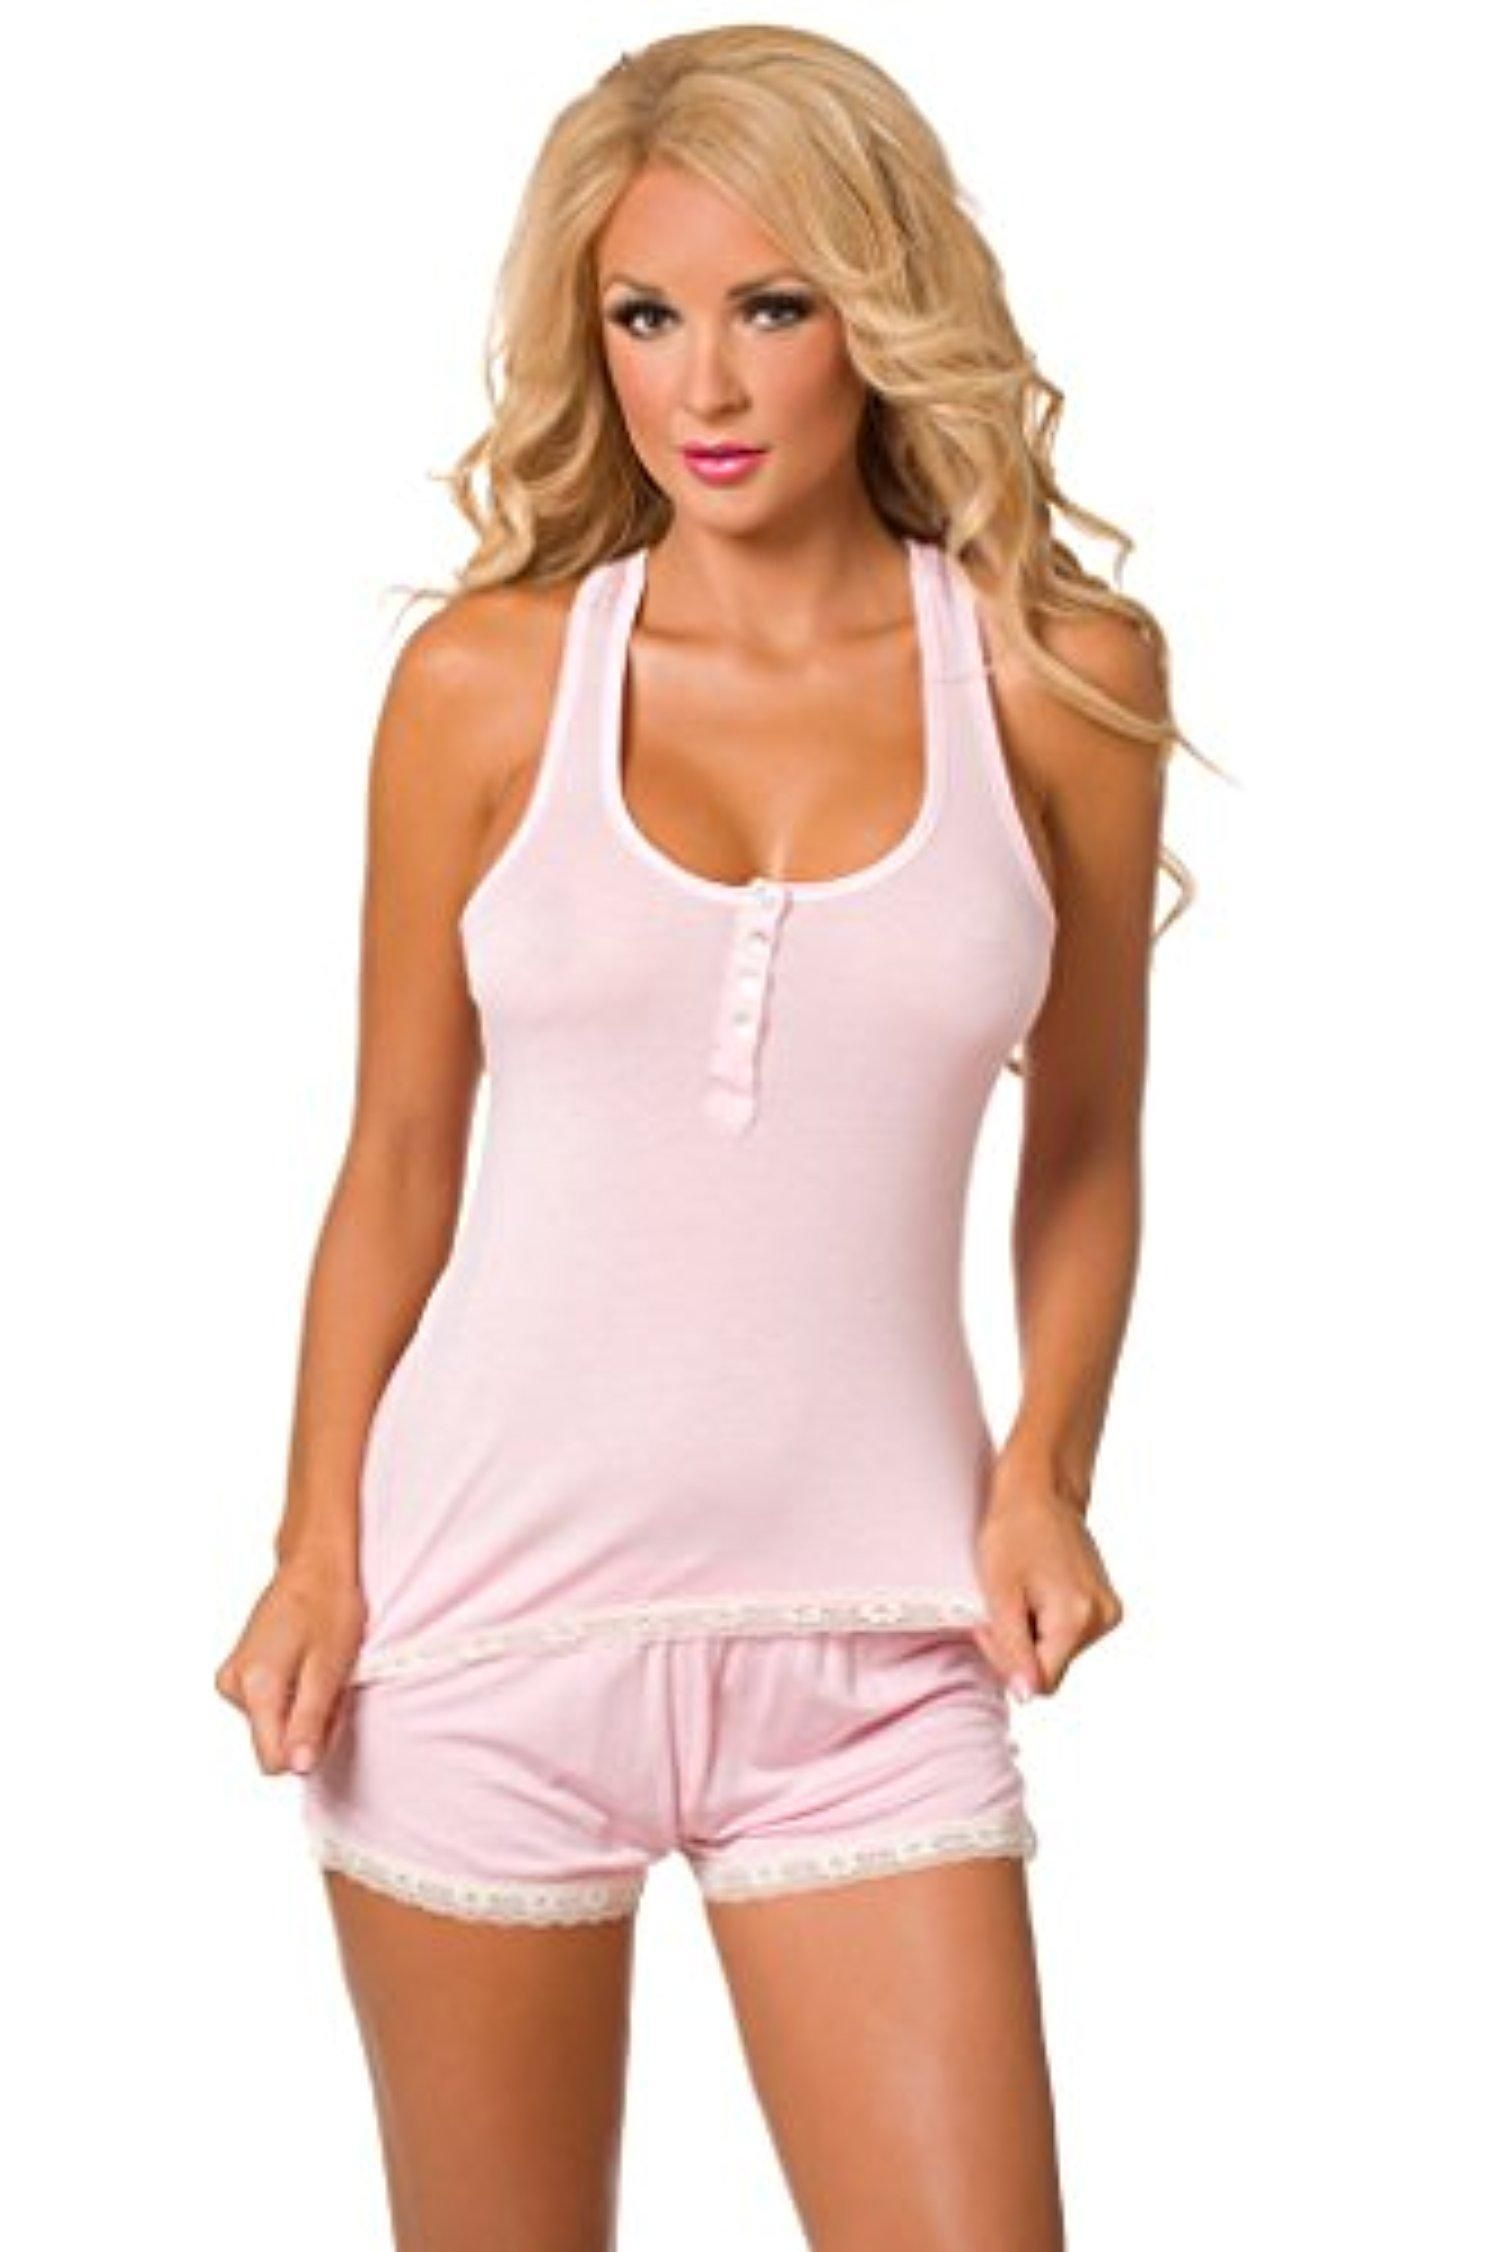 cc86fb358a Velvet Kitten Sweetness Short Pink PJ Sexy Sleepwear Tank Top Set 563786  Large - Brought to you by Avarsha.com